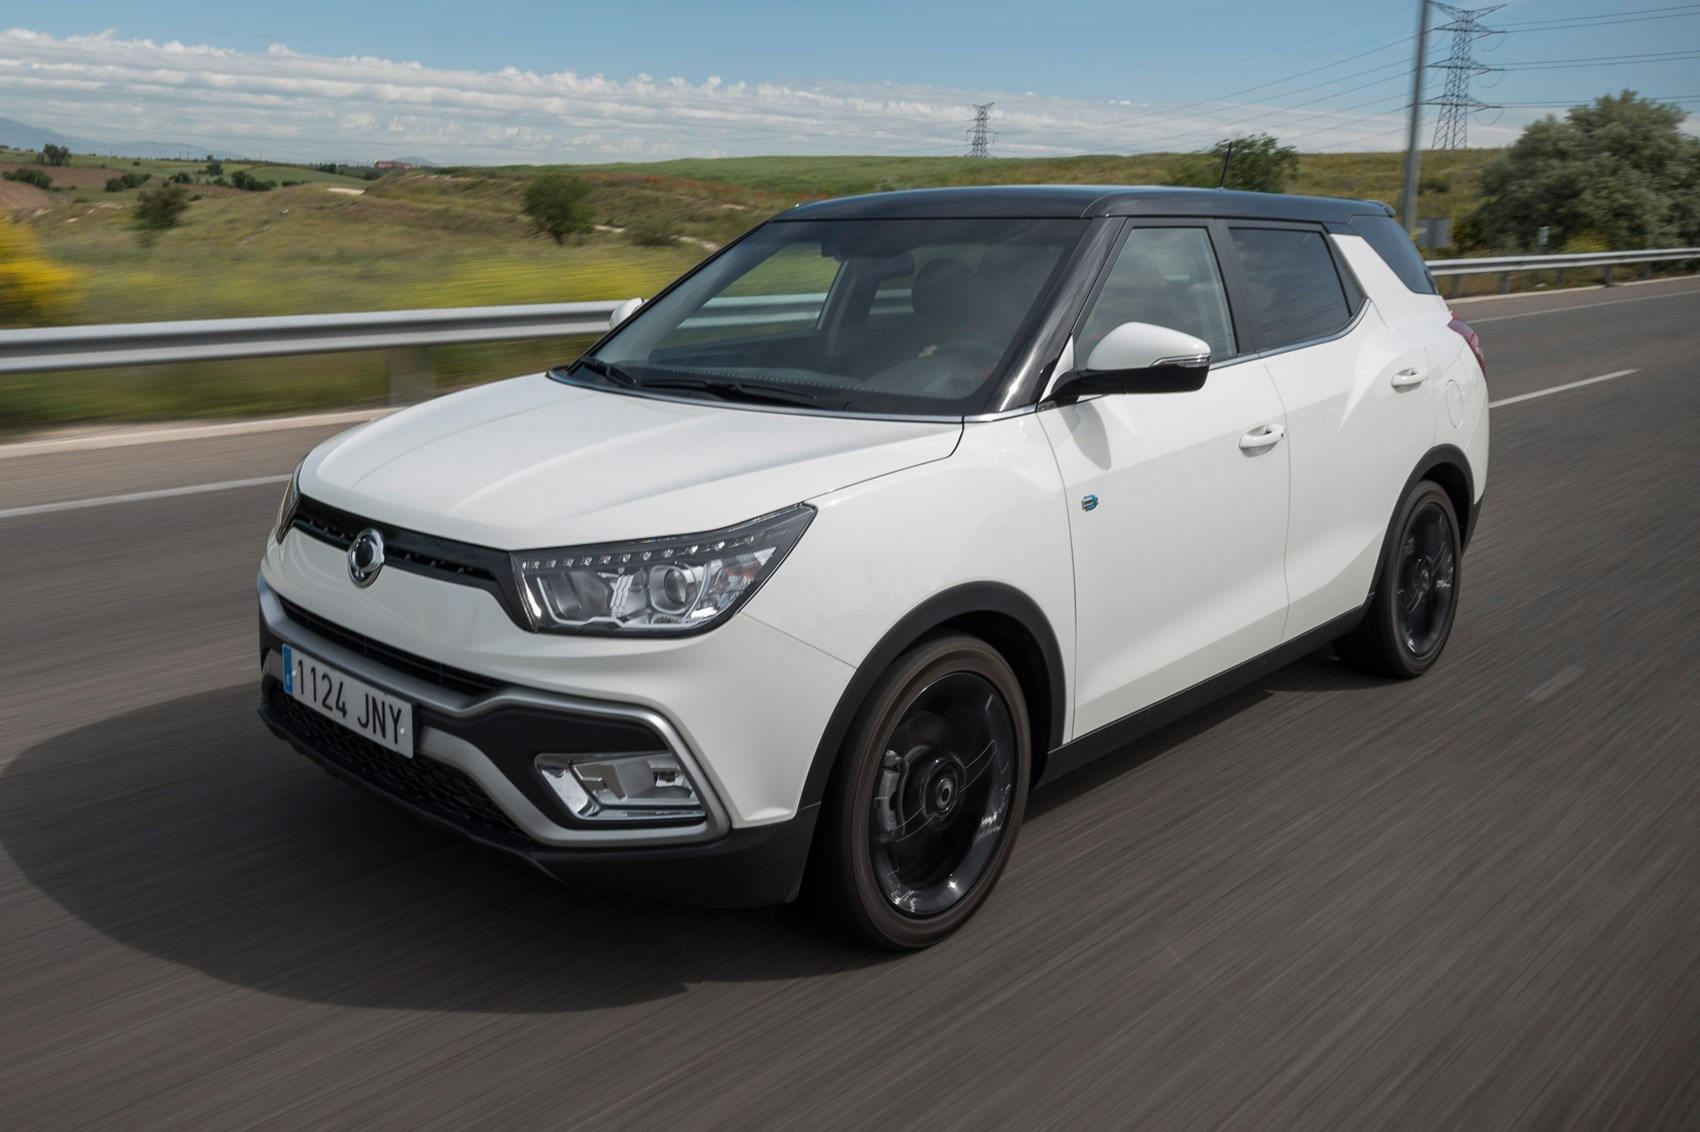 Audi Used For Sale >> SsangYong Tivoli XLV (2016) review by CAR Magazine